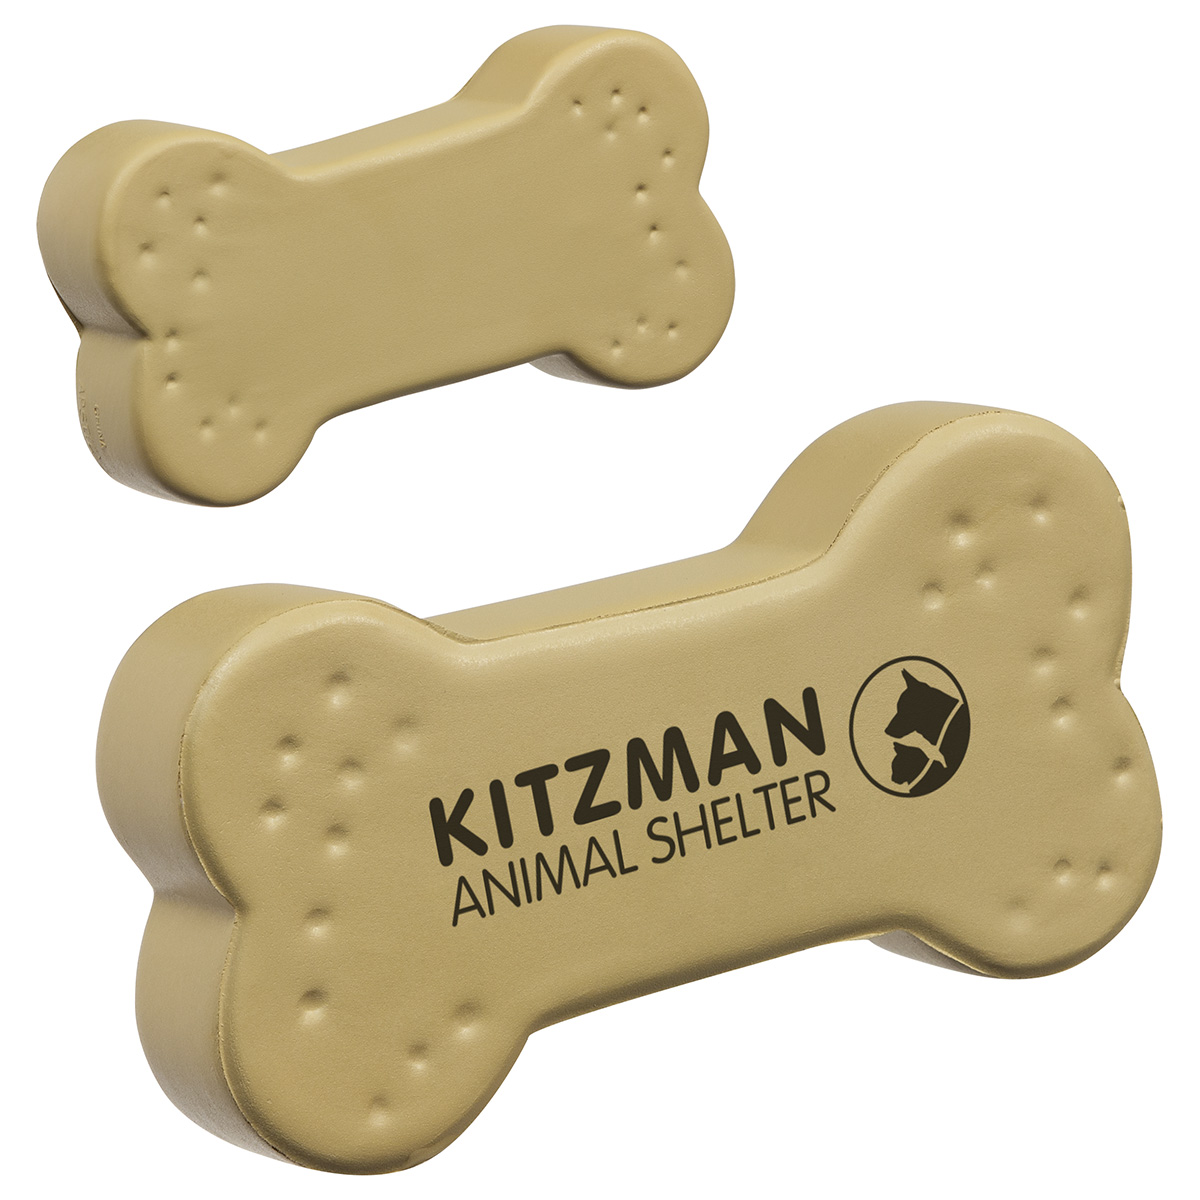 Dog Treat Stress Reliever, LPE-DT04, 1 Colour Imprint